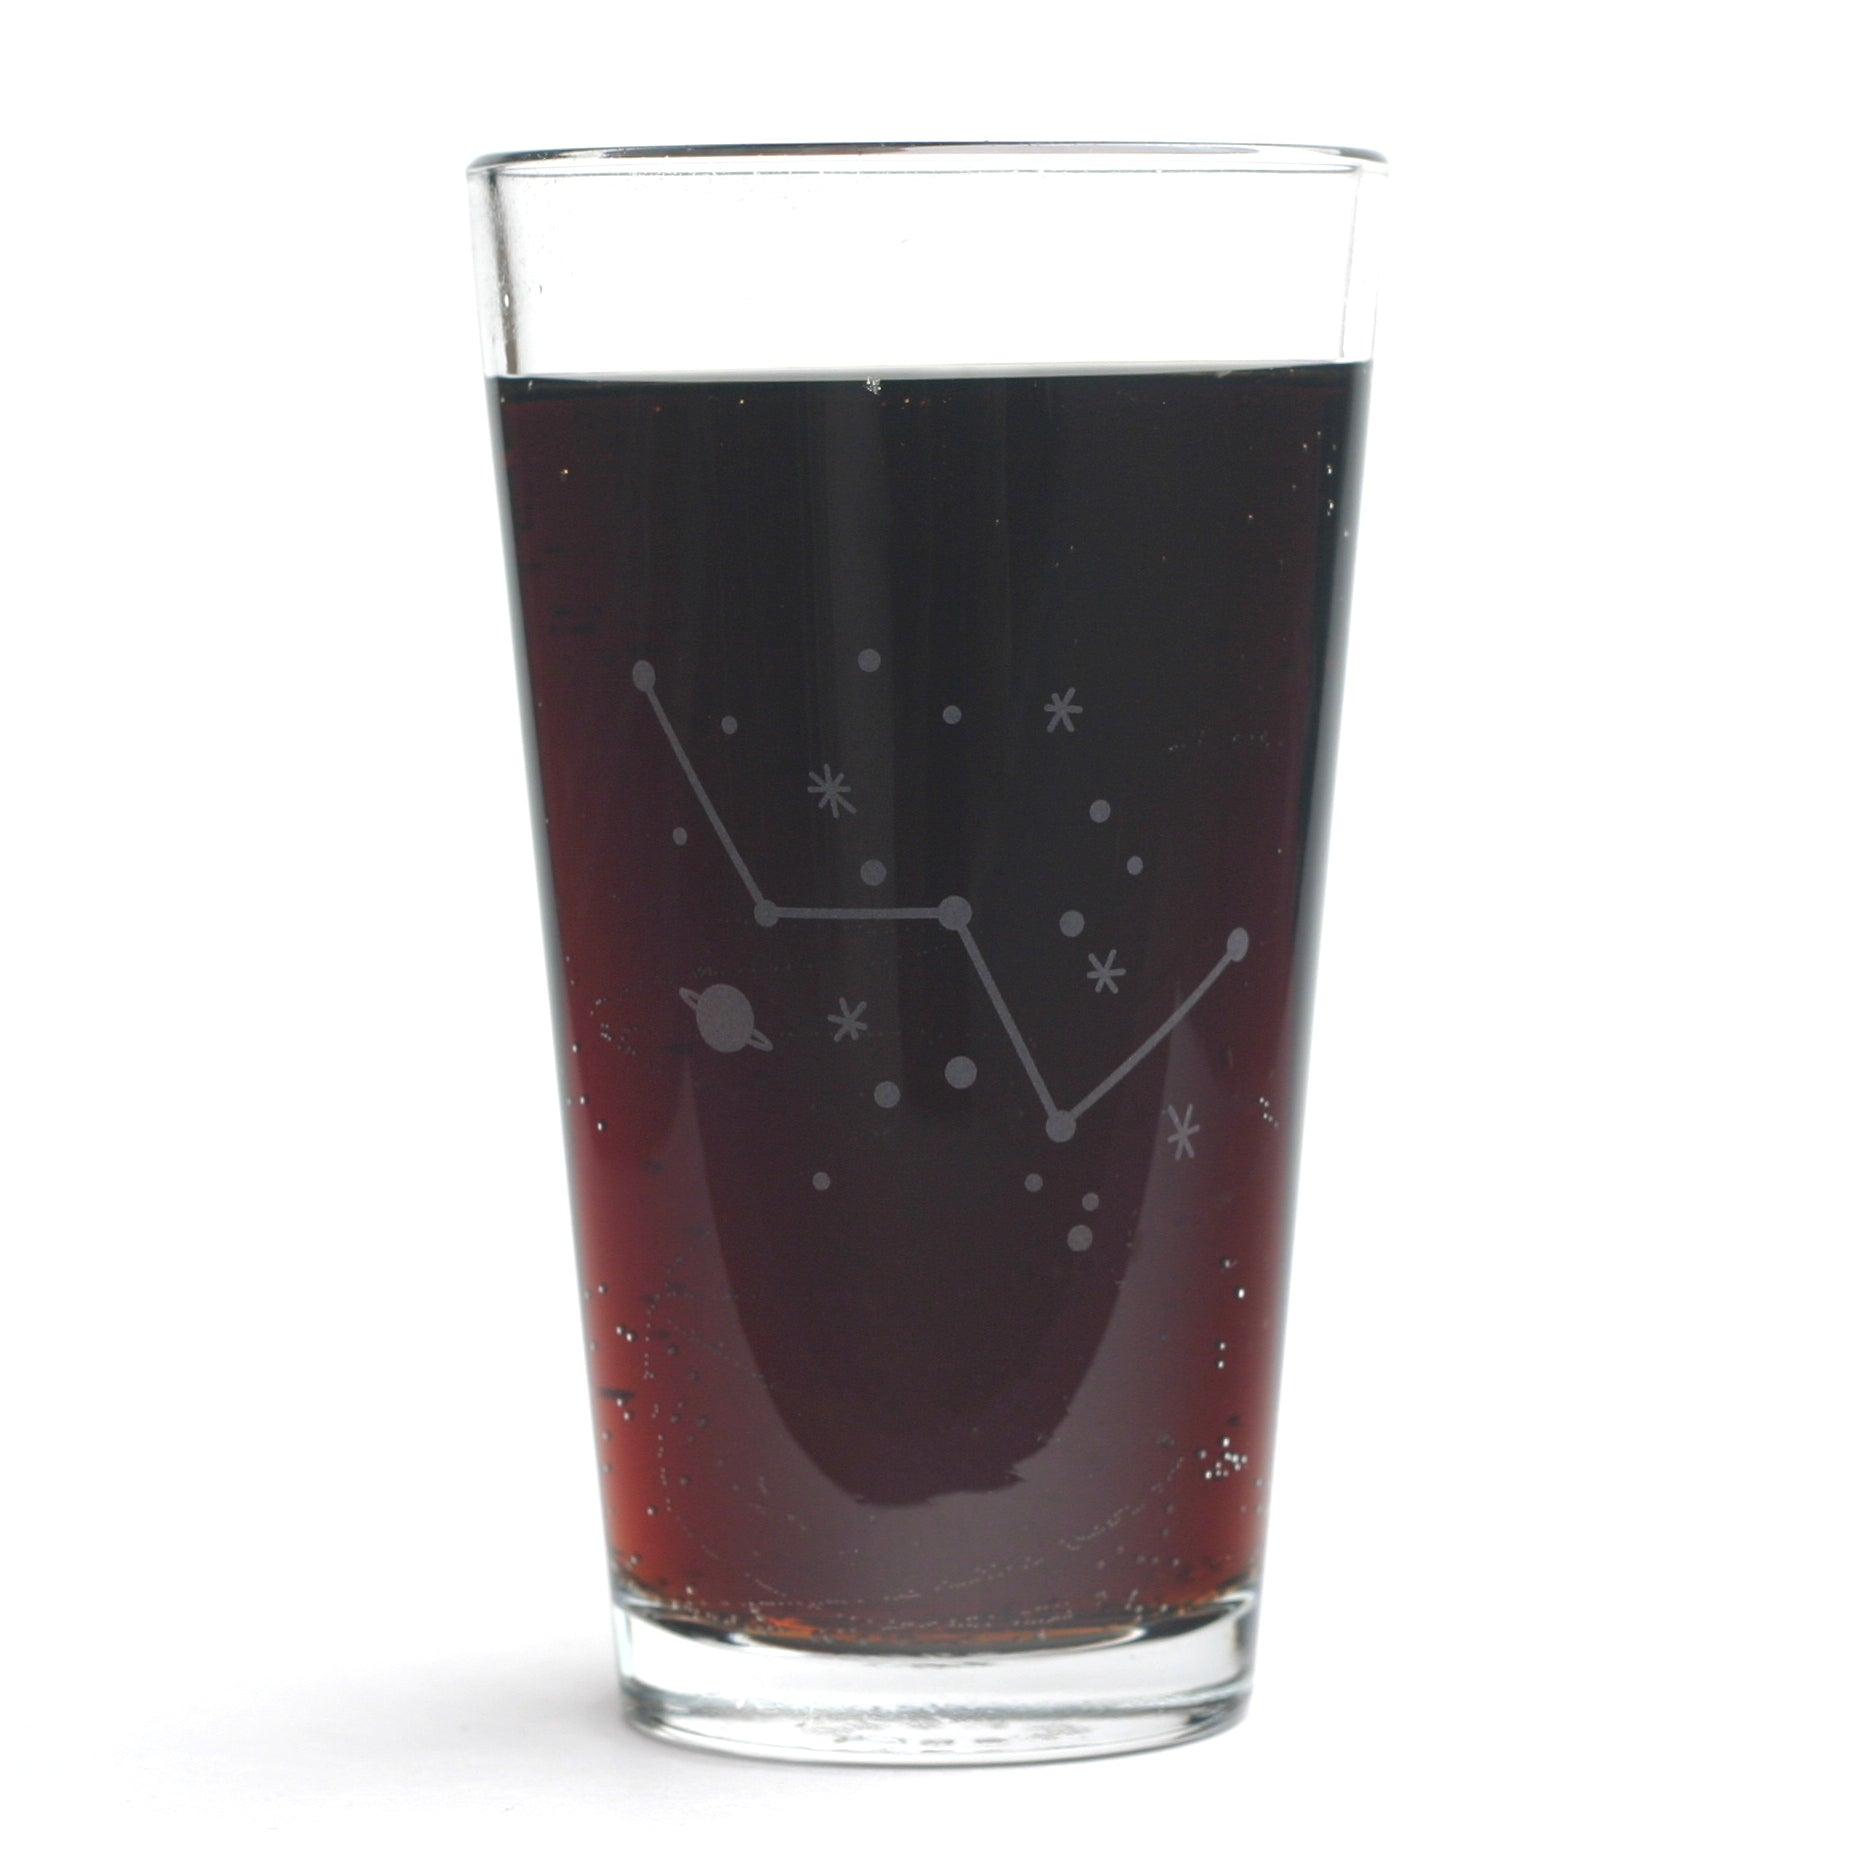 Cassiopeia etched pint glass by Bread and Badger